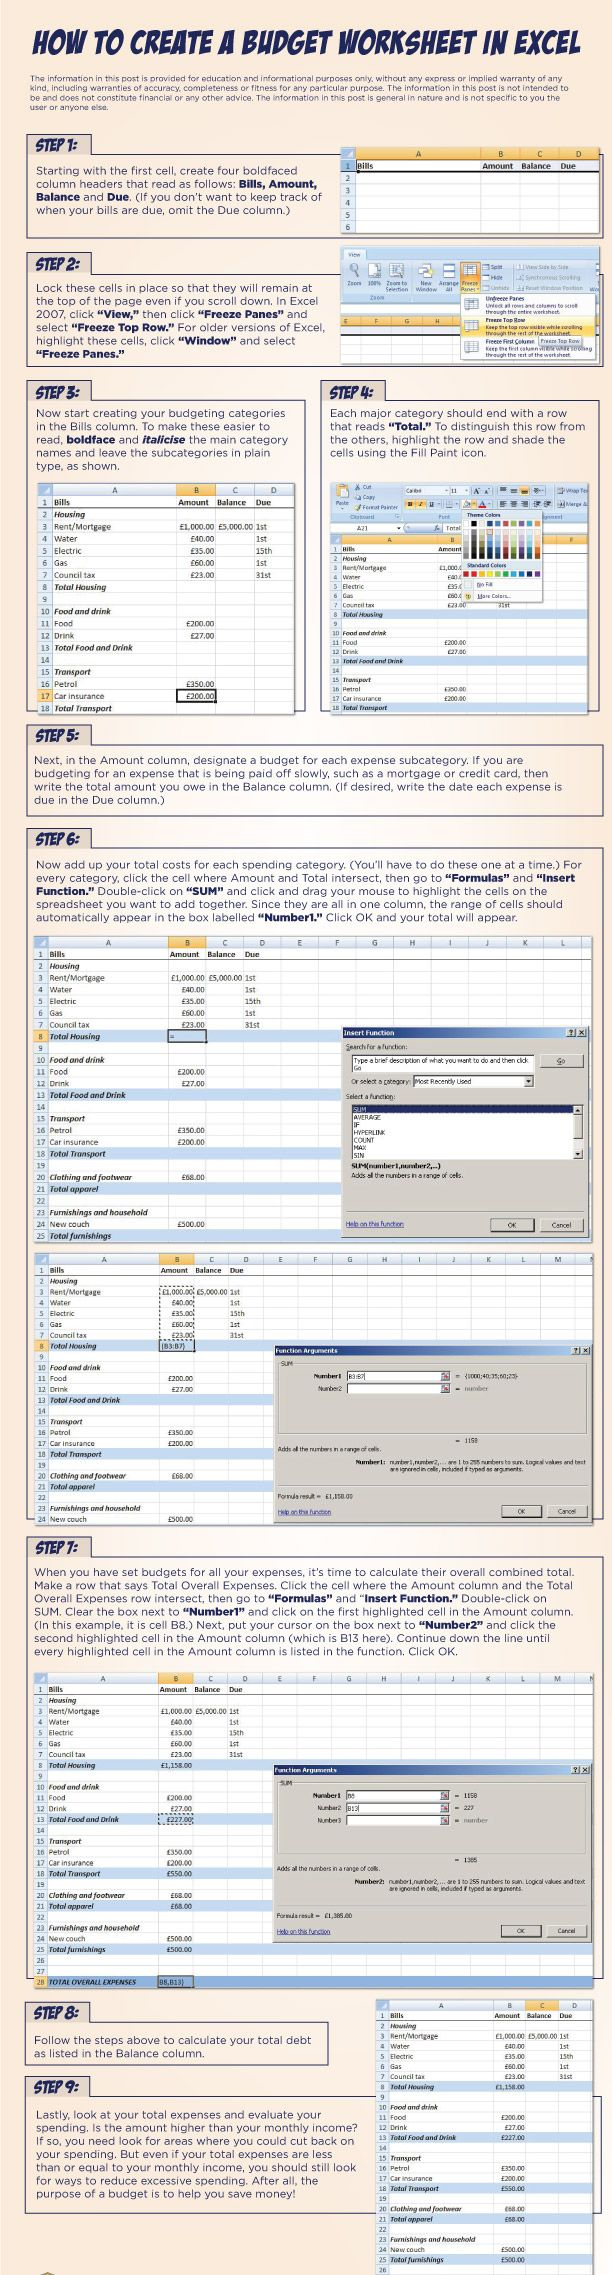 worksheet Build A Budget Worksheet learn how to create a budget worksheet in excel step by step